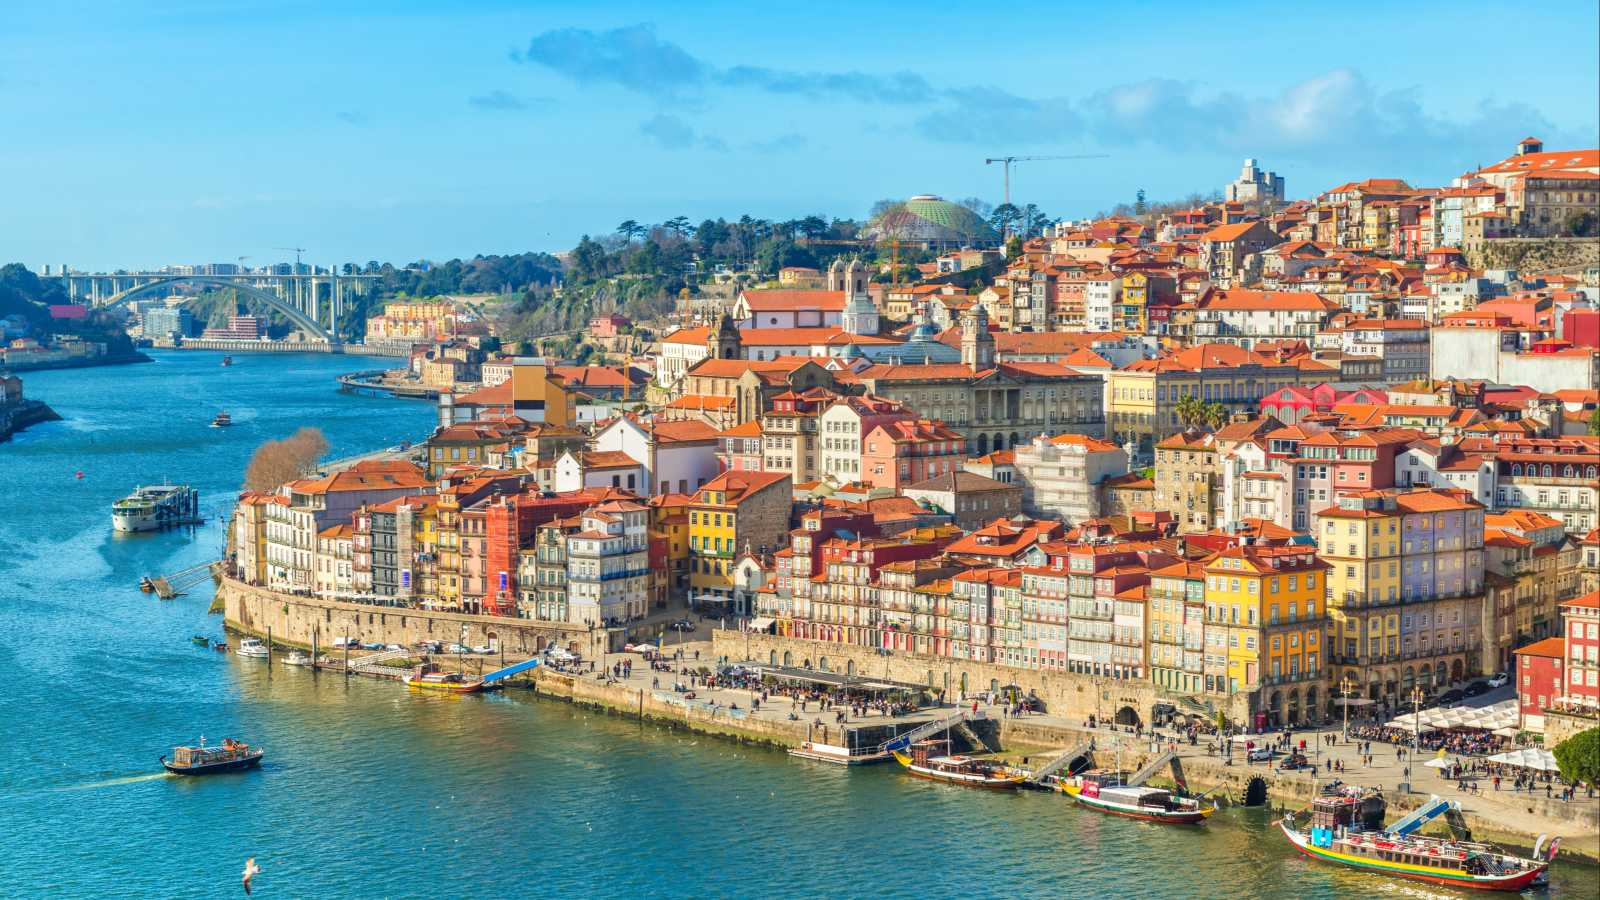 Europe, Portugal, Porto, the Porto skyline seen from  Douro River. Blue sky and brightly lit buildings with red tile roofs.